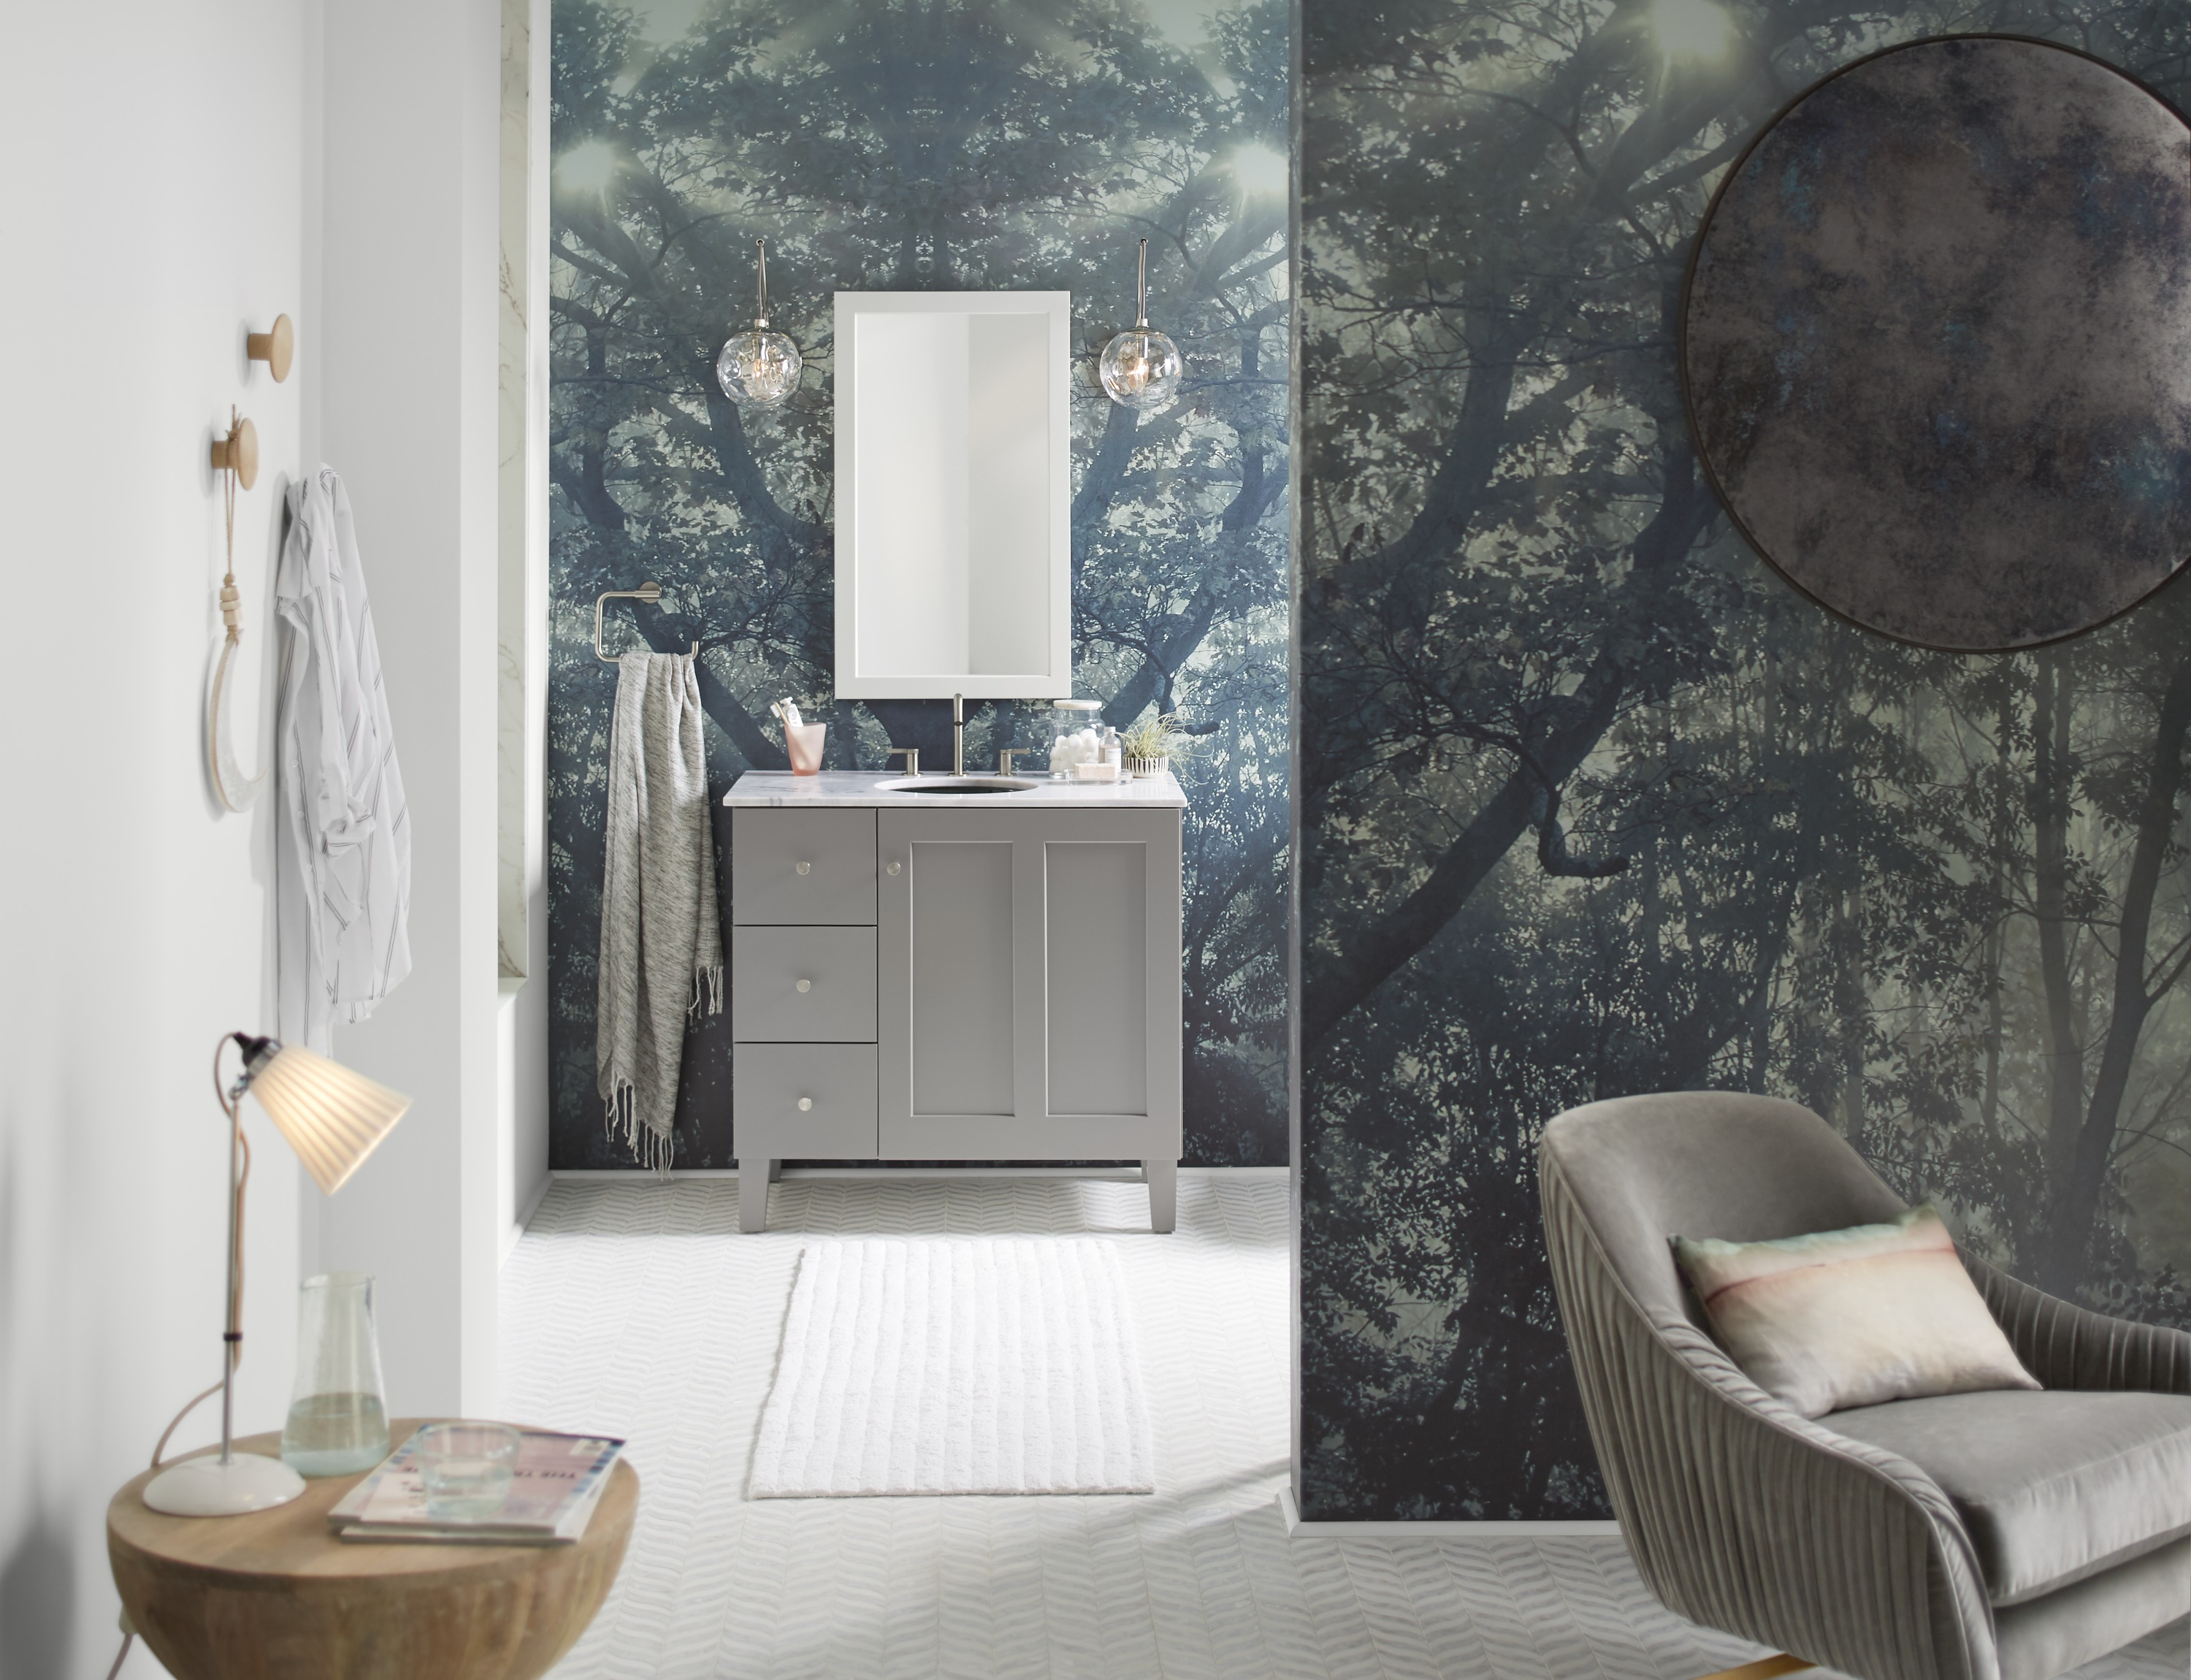 Poplin® vanity     Poplin mirror     Stillness® towel ring     Stillness faucet     The design of the bathroom is carried into the master bedroom's adjacent sitting area, bringing a cohesiveness to the entire master suite.